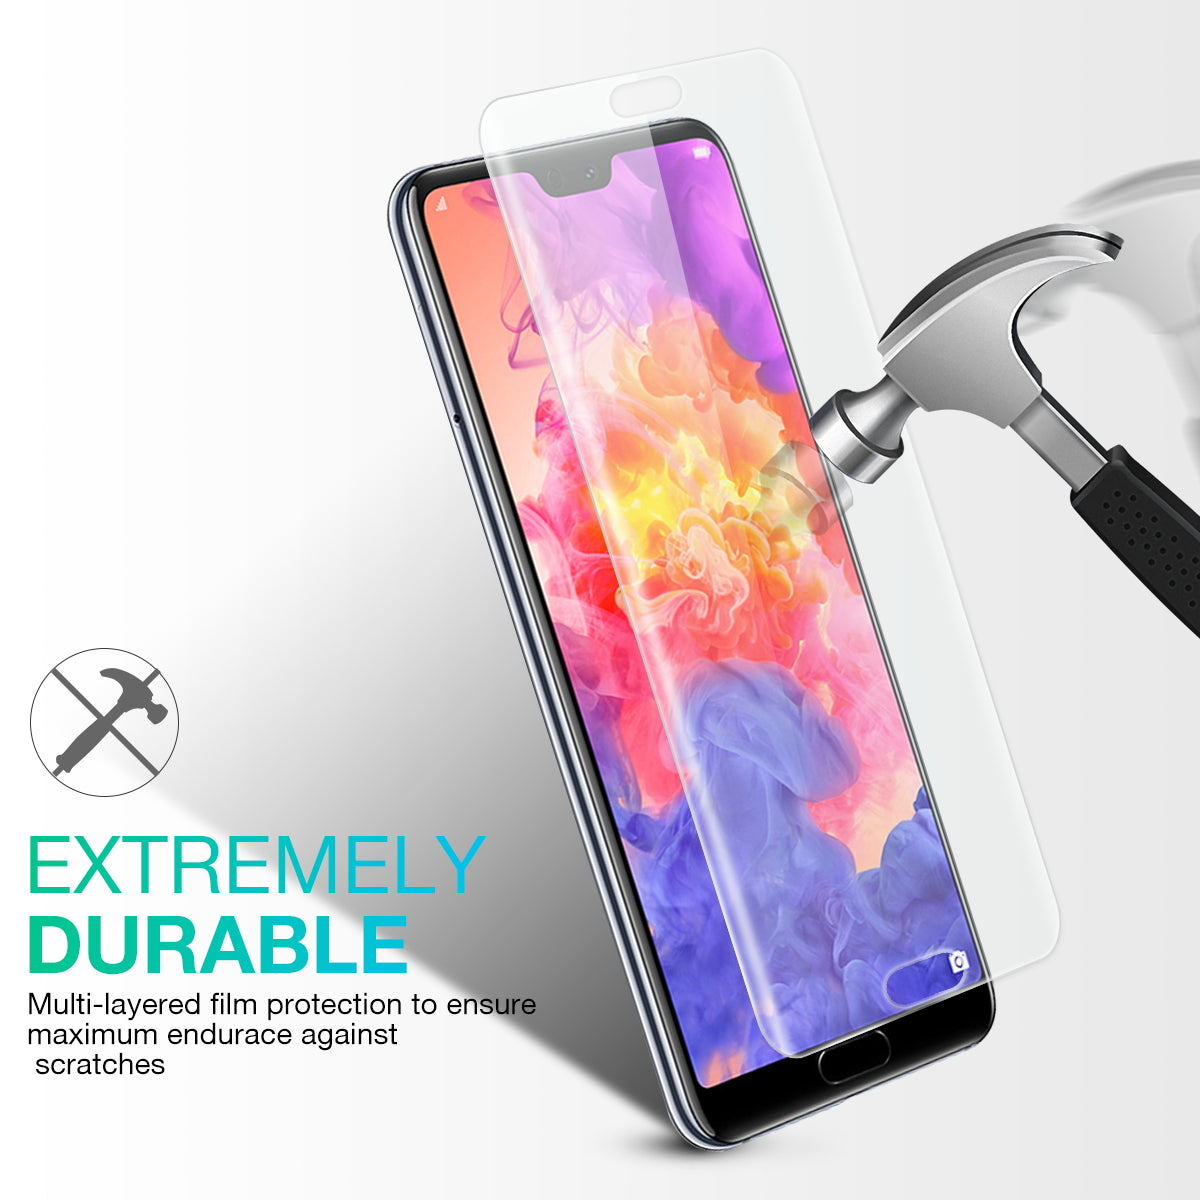 Huawei P20 Pro Screen Protector,Genuine MaxShield HD Aqua Crystal Film Guard